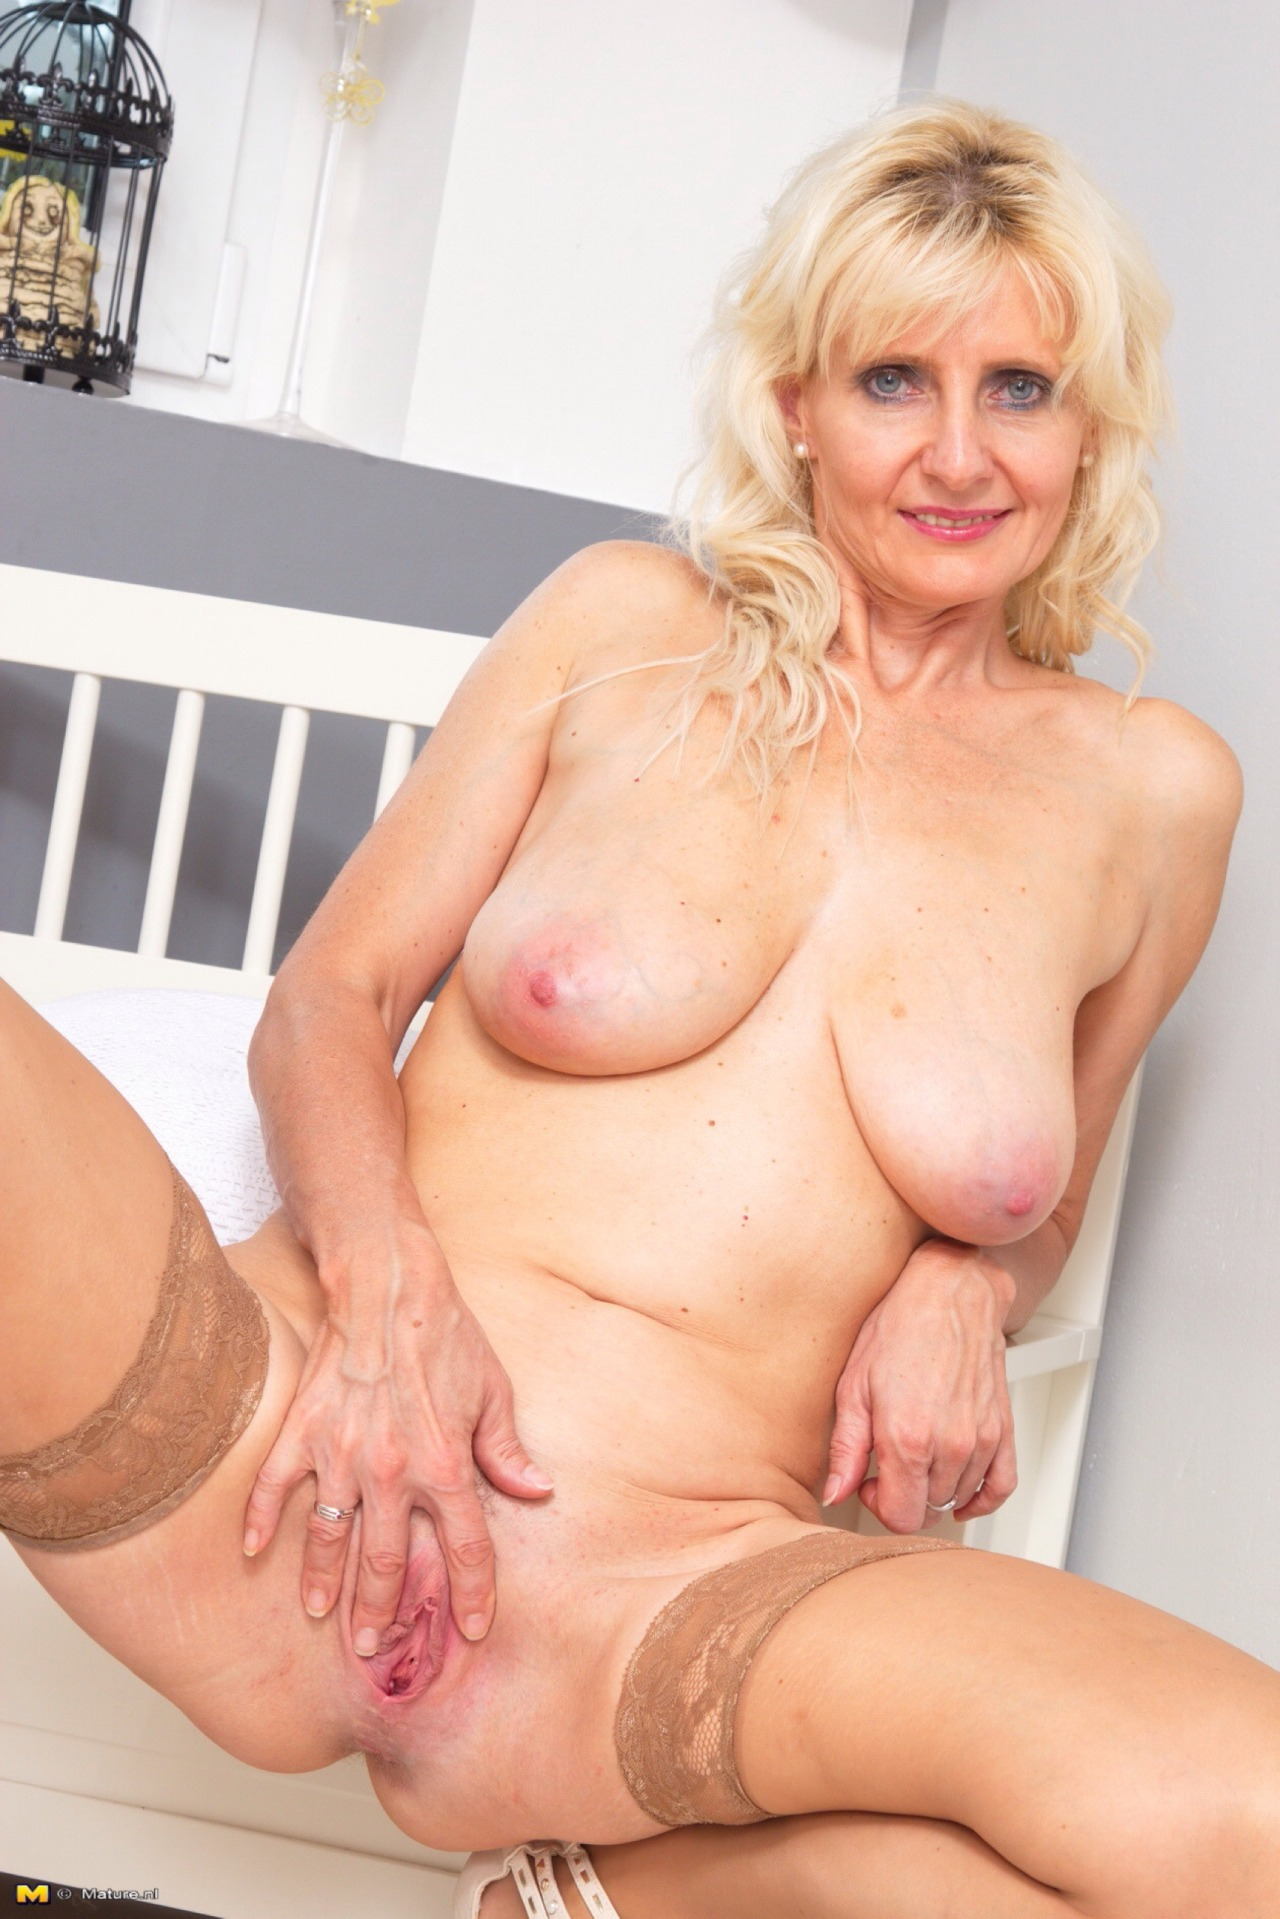 Due Mature amature gilfs nude consider, that